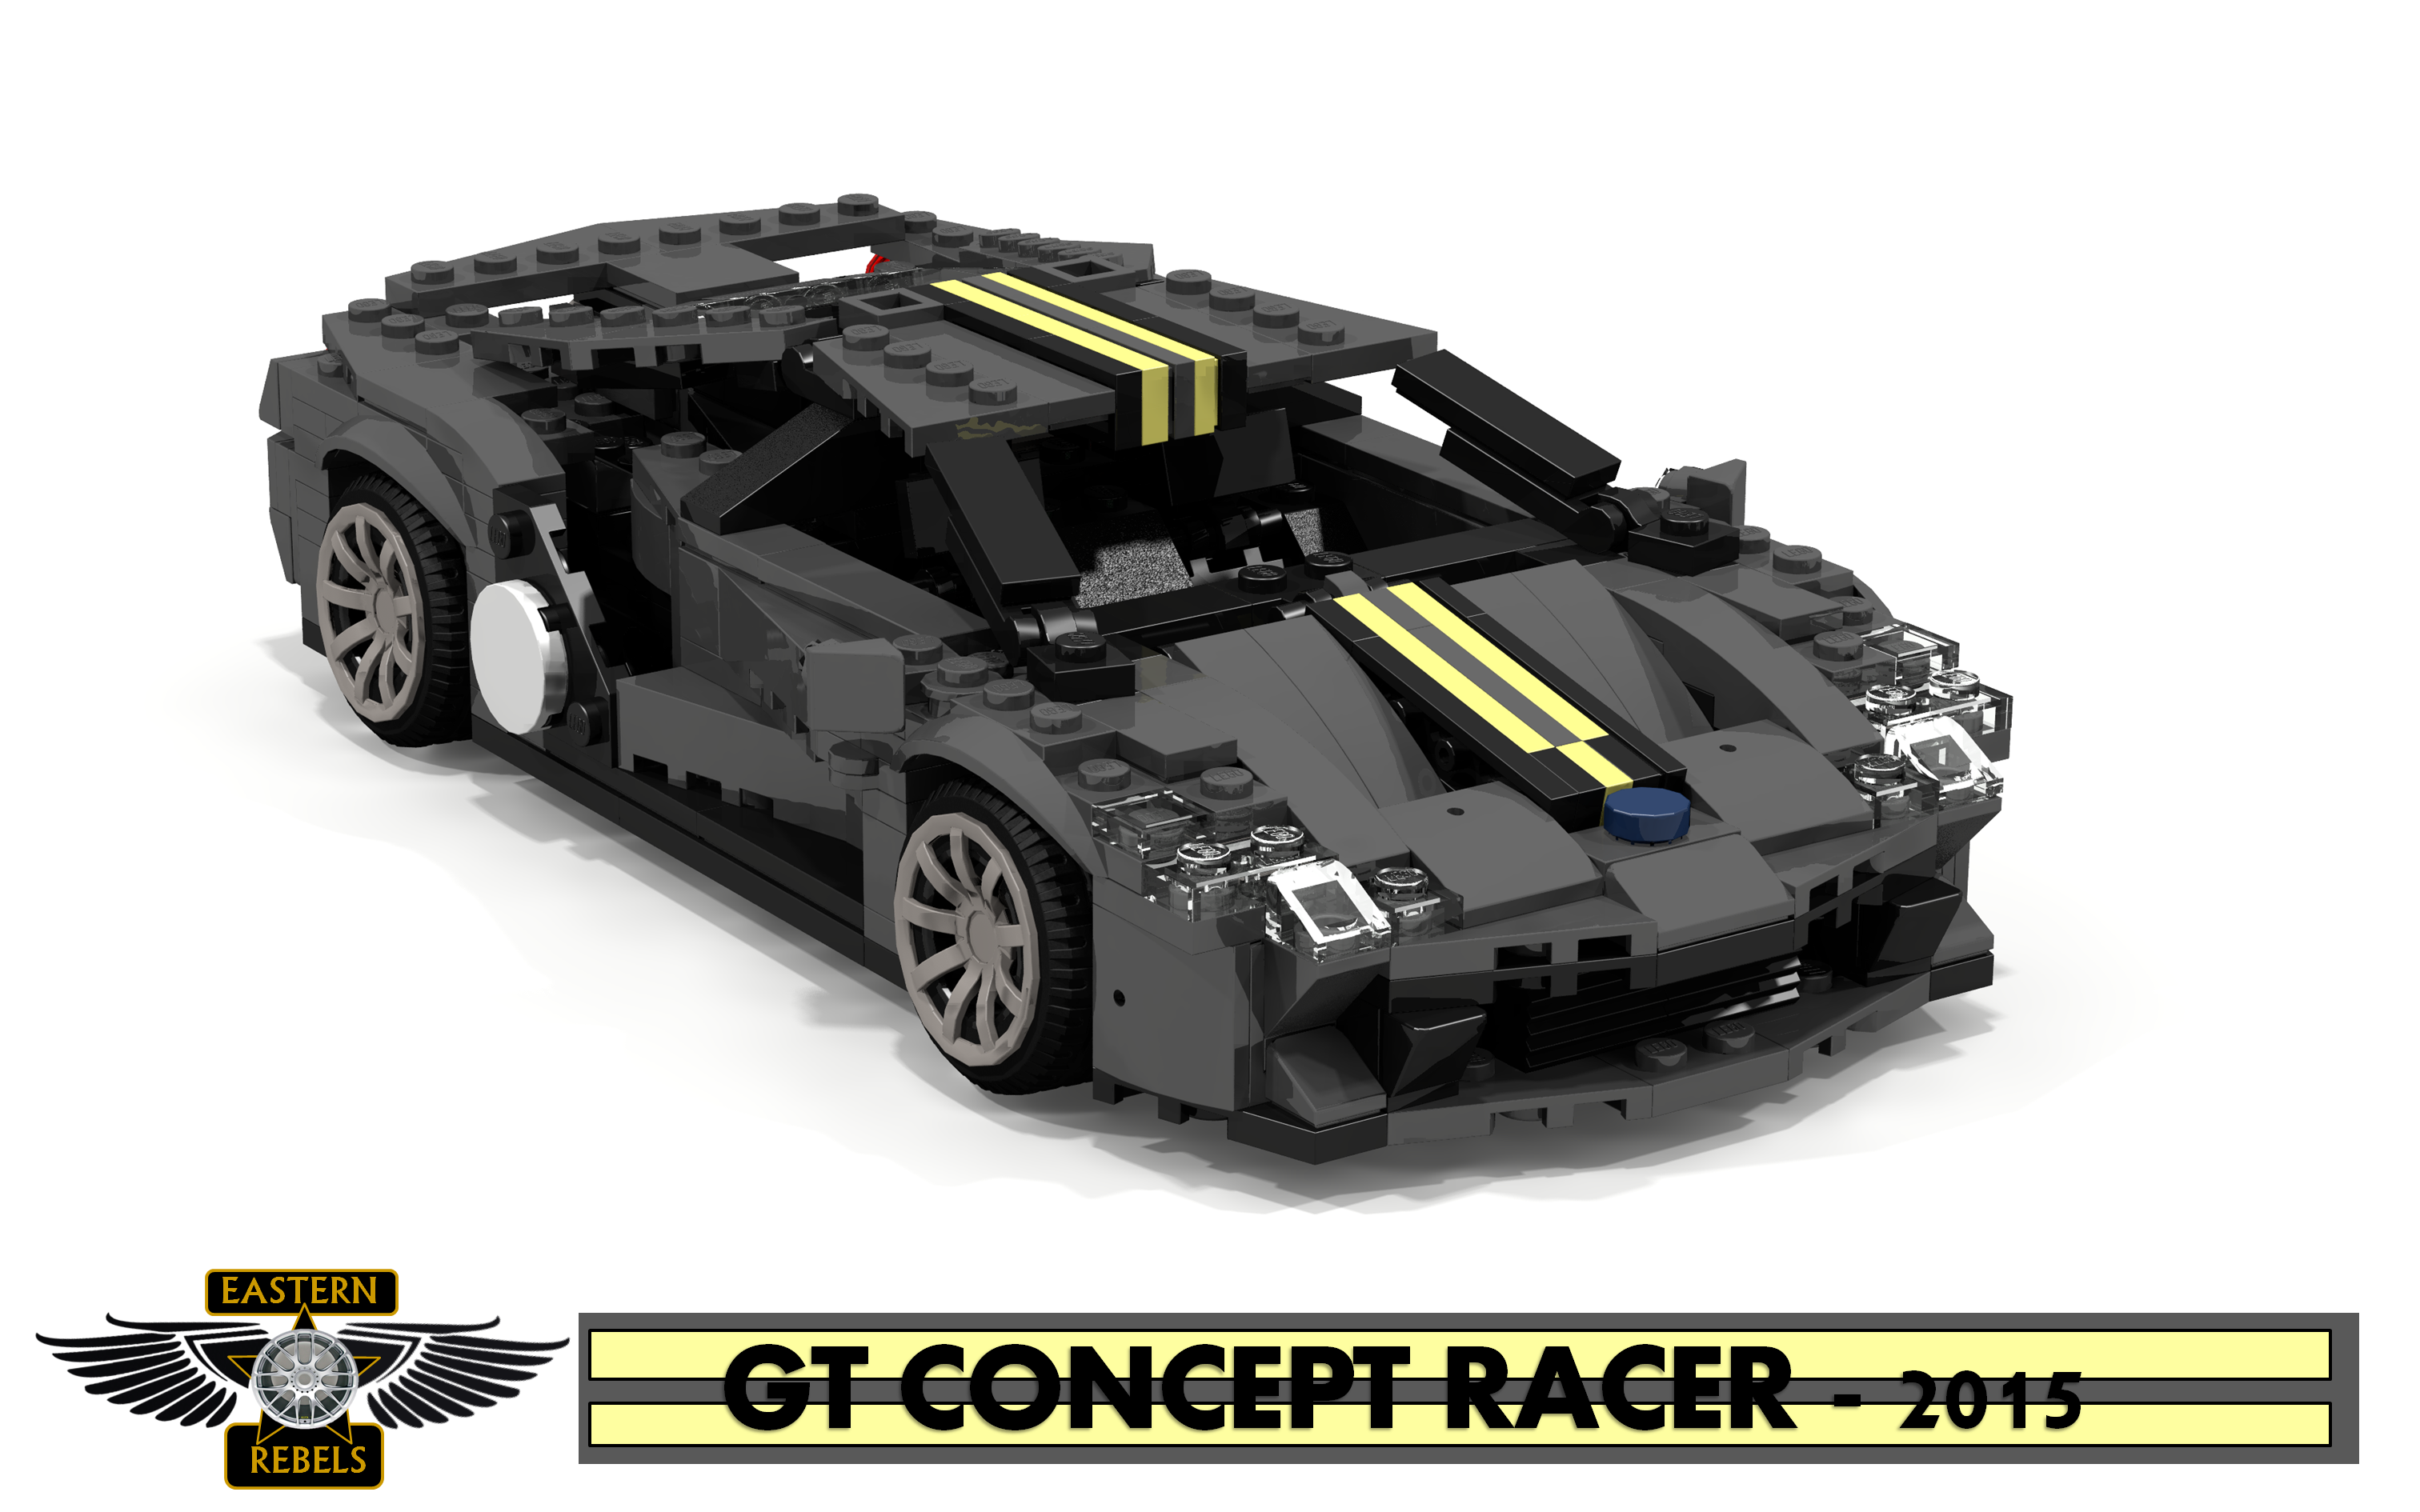 ford_gt_2016_concept_racer_01.png